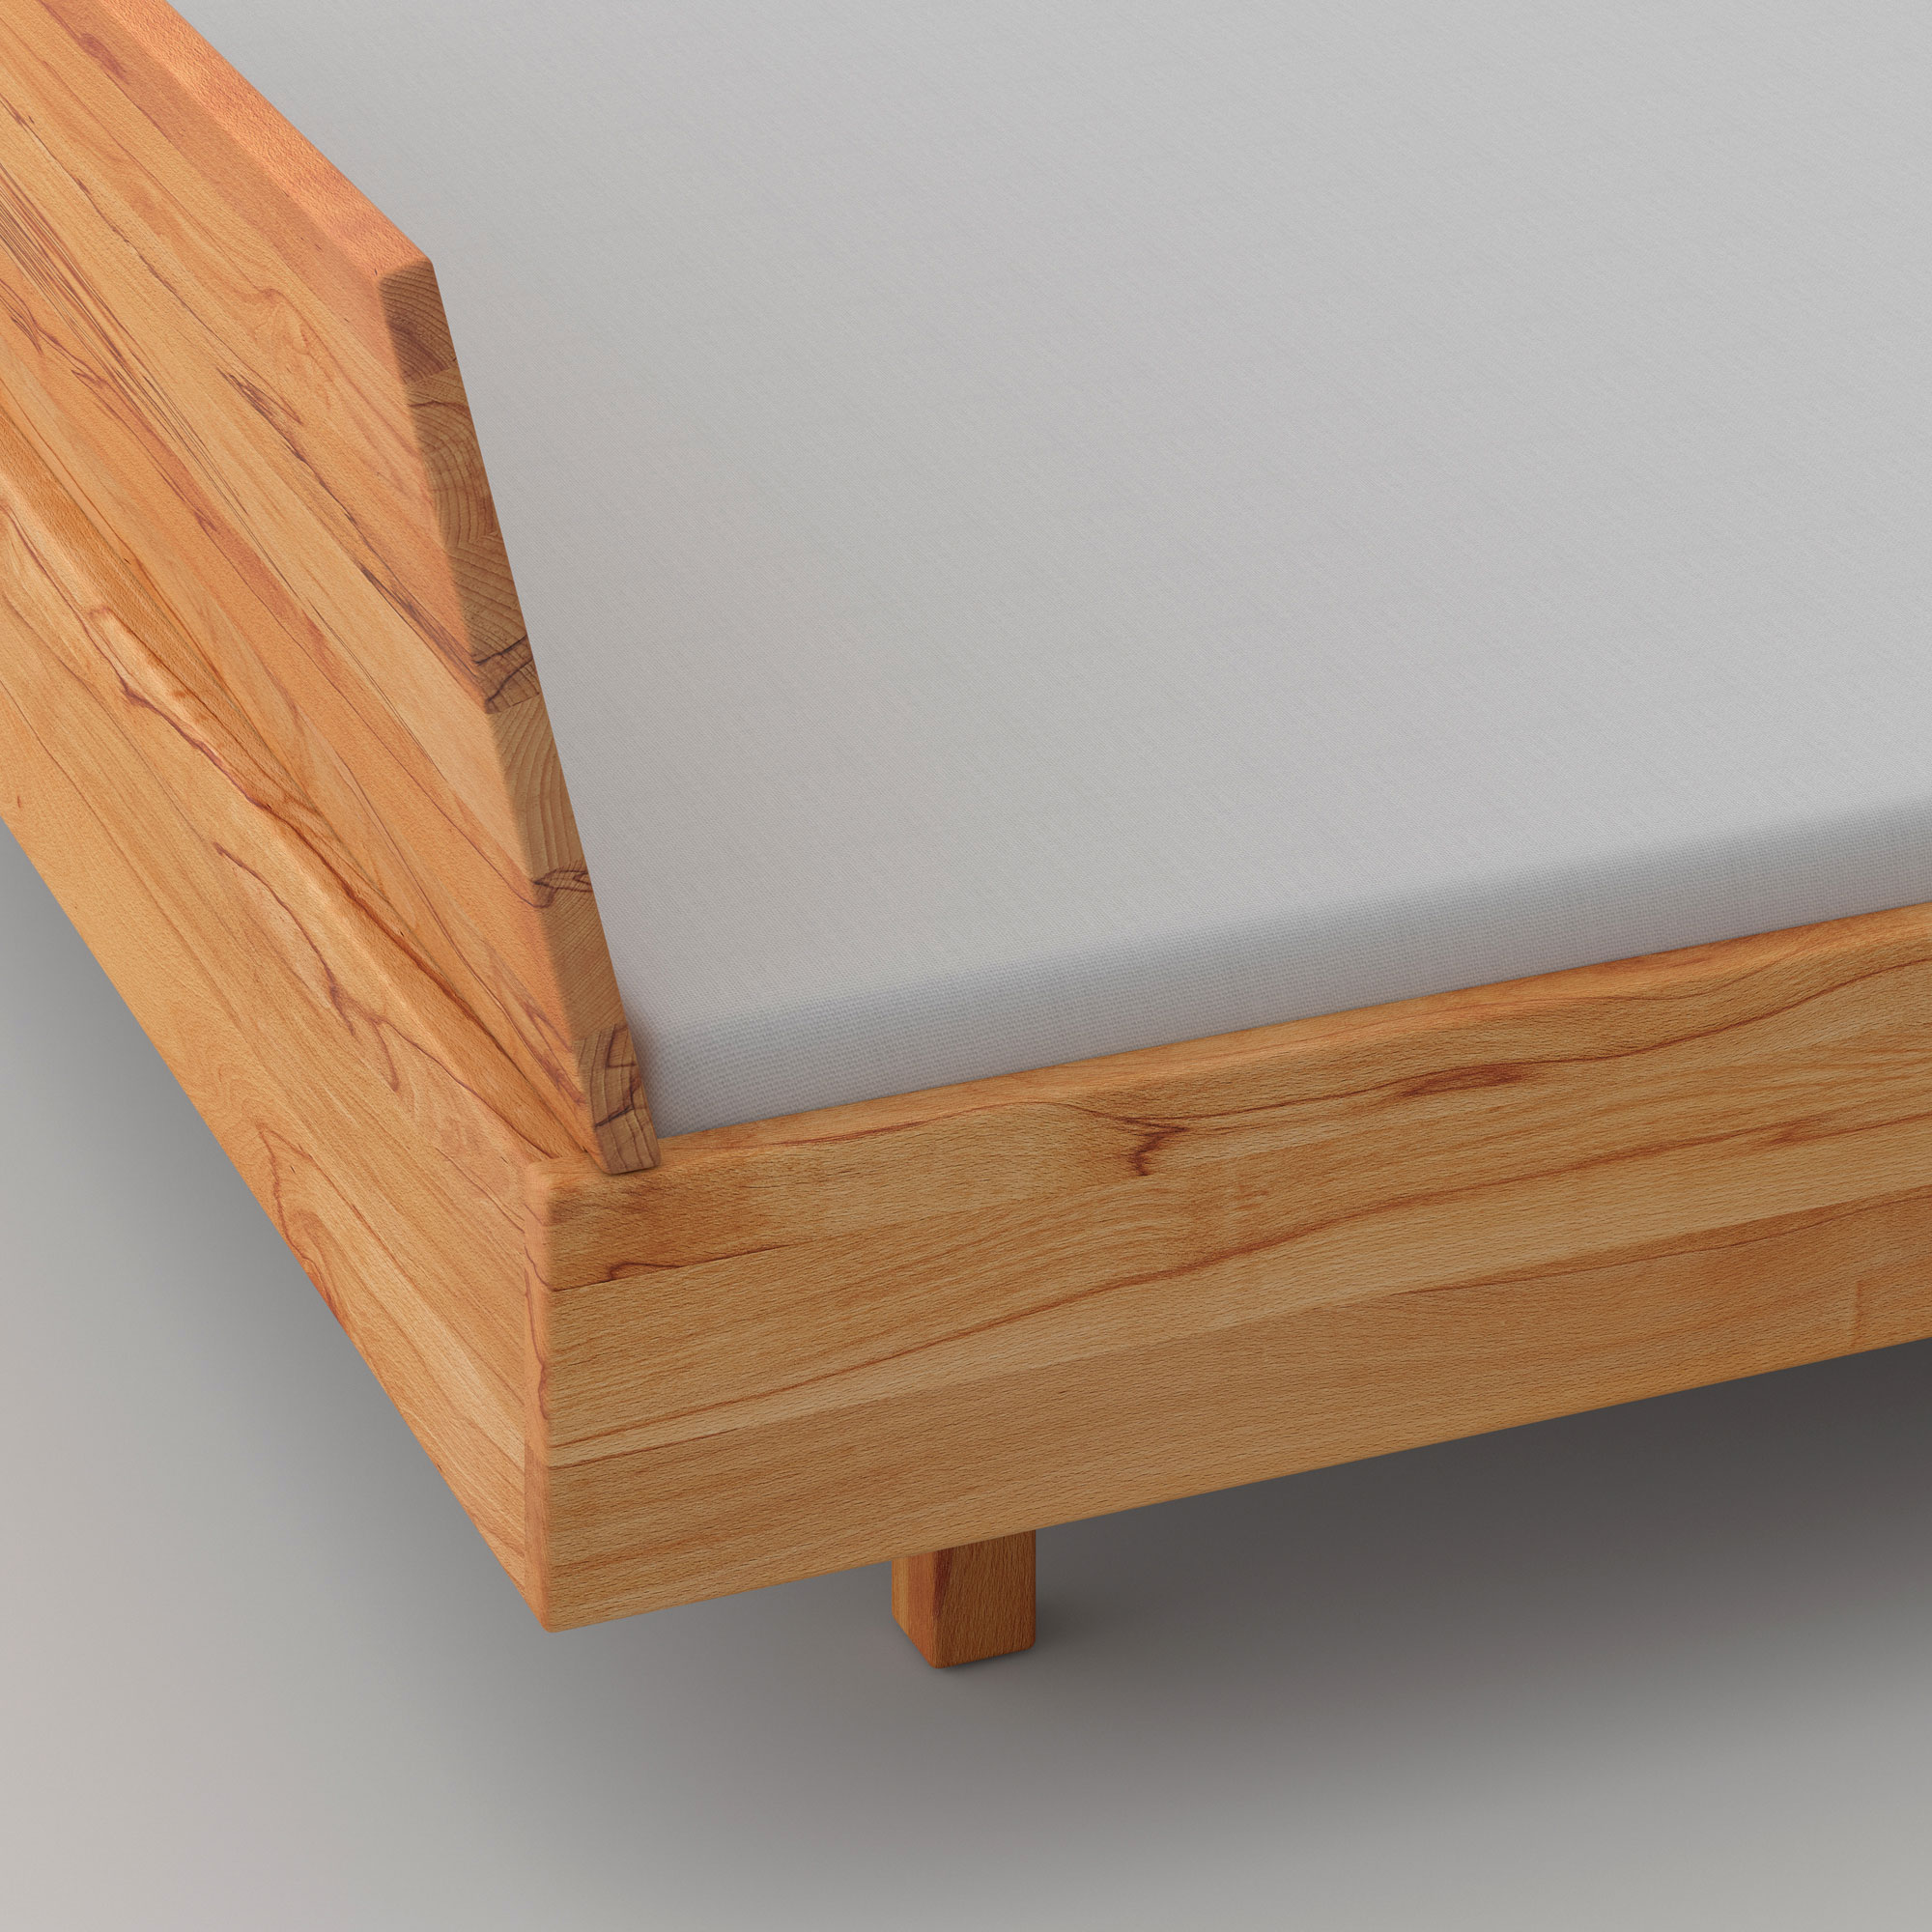 Solid Wooden Bed QUADRA SOFT custom made in solid wood by MODUM